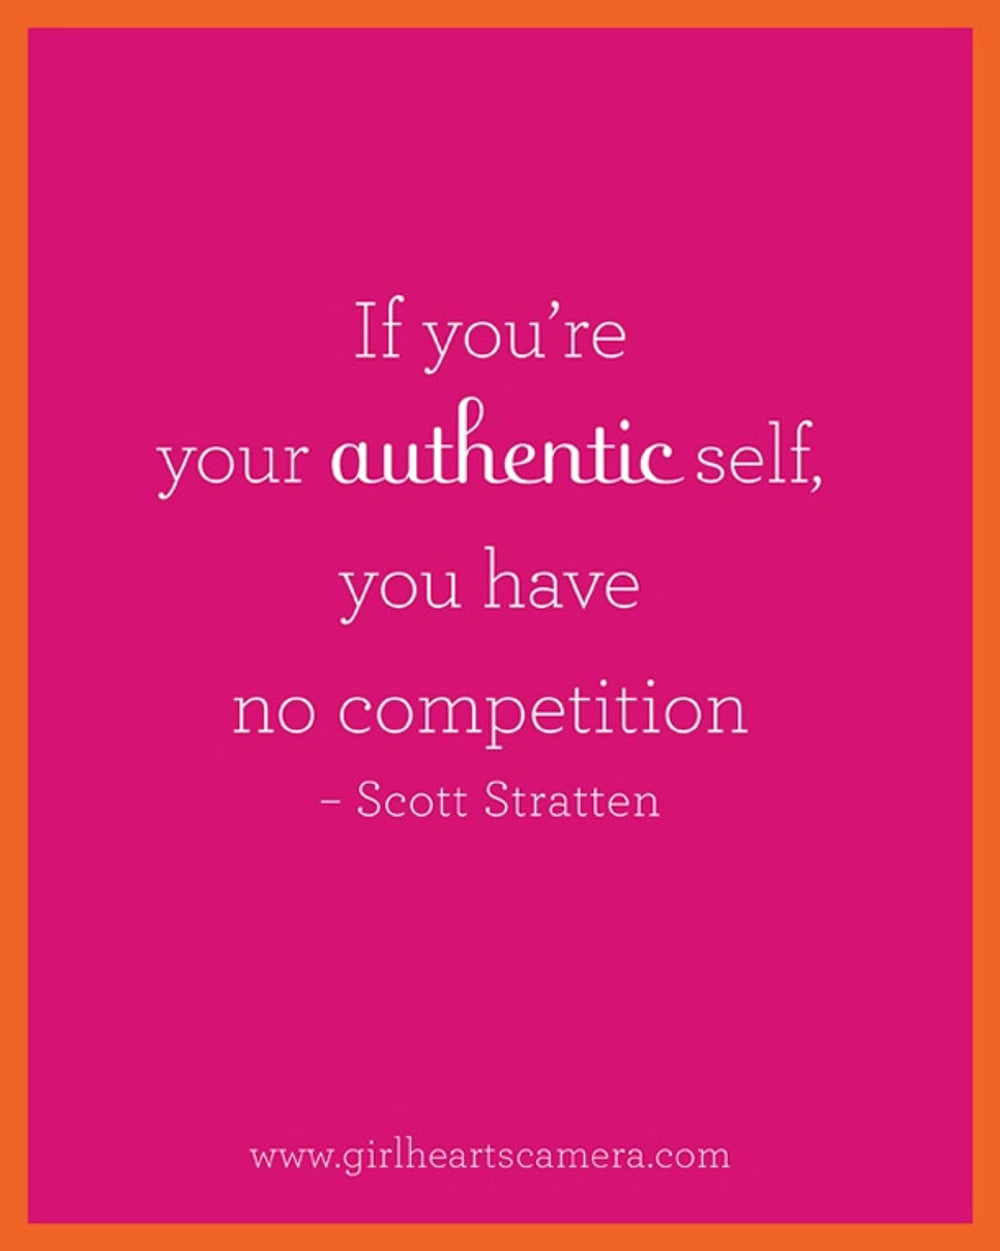 4. Be authentic